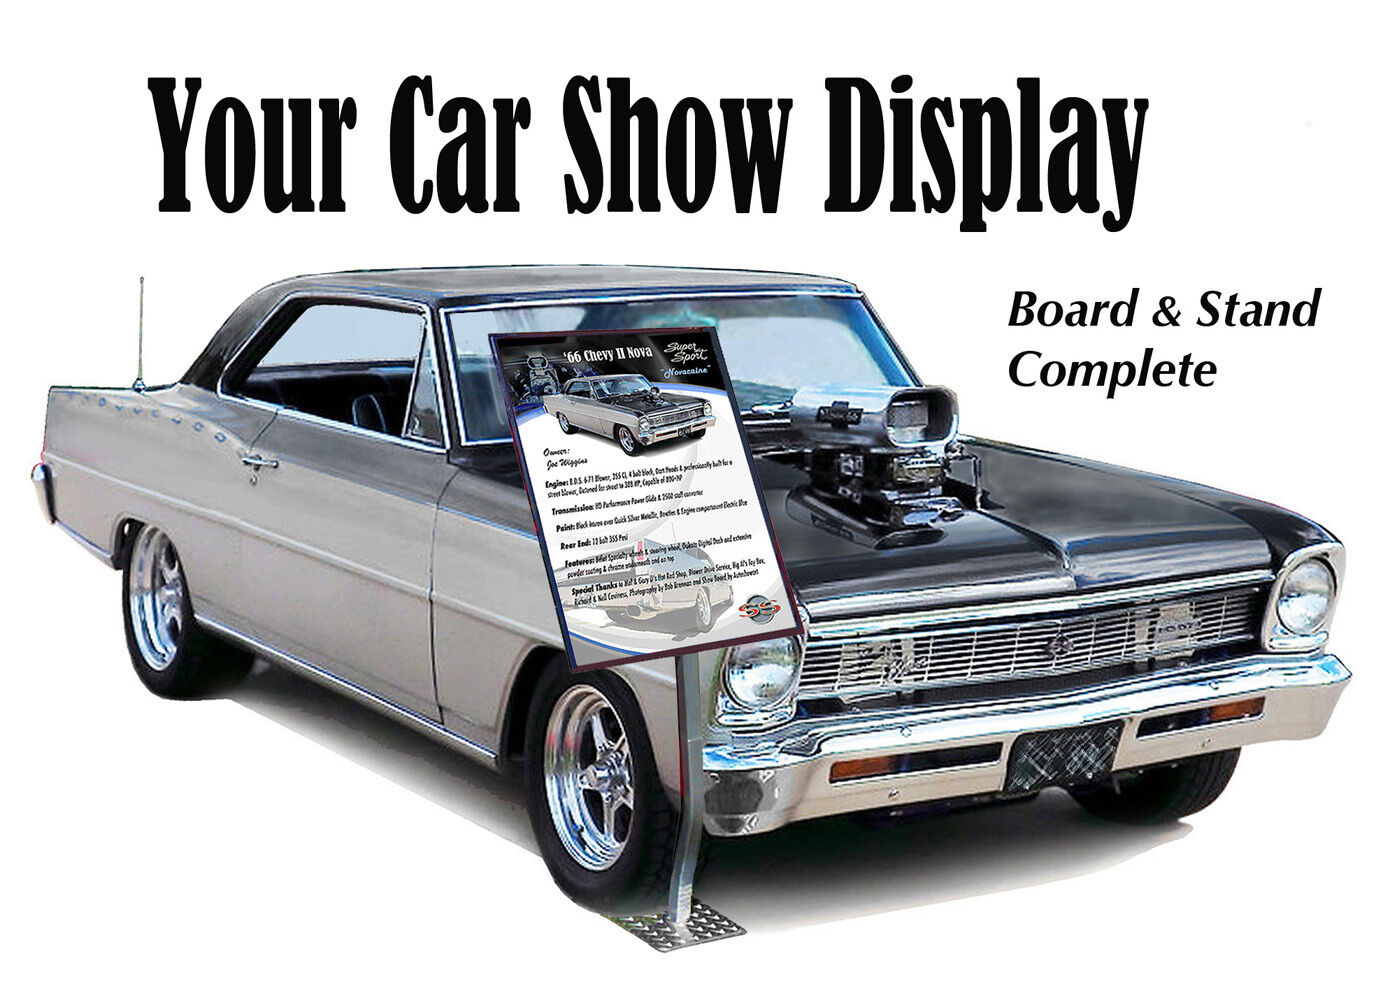 YOUR CAR SHOW DISPLAY Board Stand Complete PicClick - Car show display boards